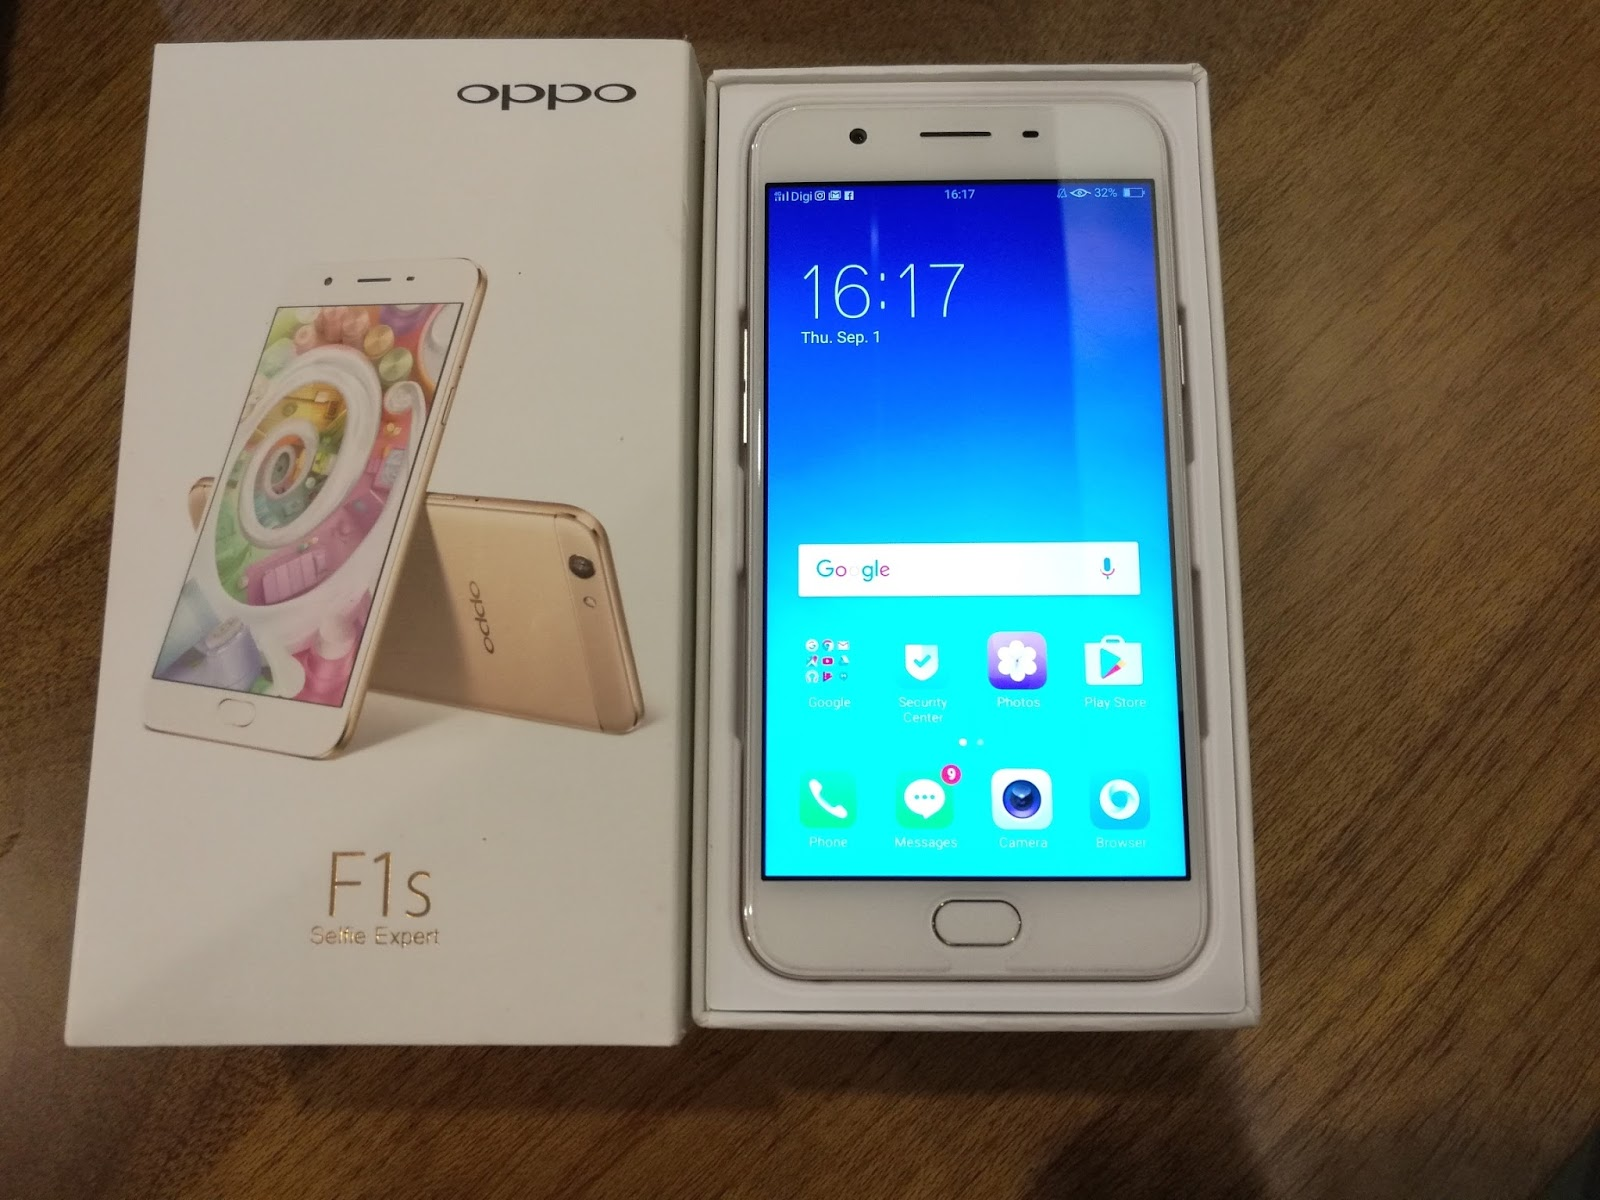 OPPO released their Selfie Expert series OPPO F1s in Malaysia on 10 August 2016 at the retail price of RM 1198 with GST OPPO F1s is the new choice for